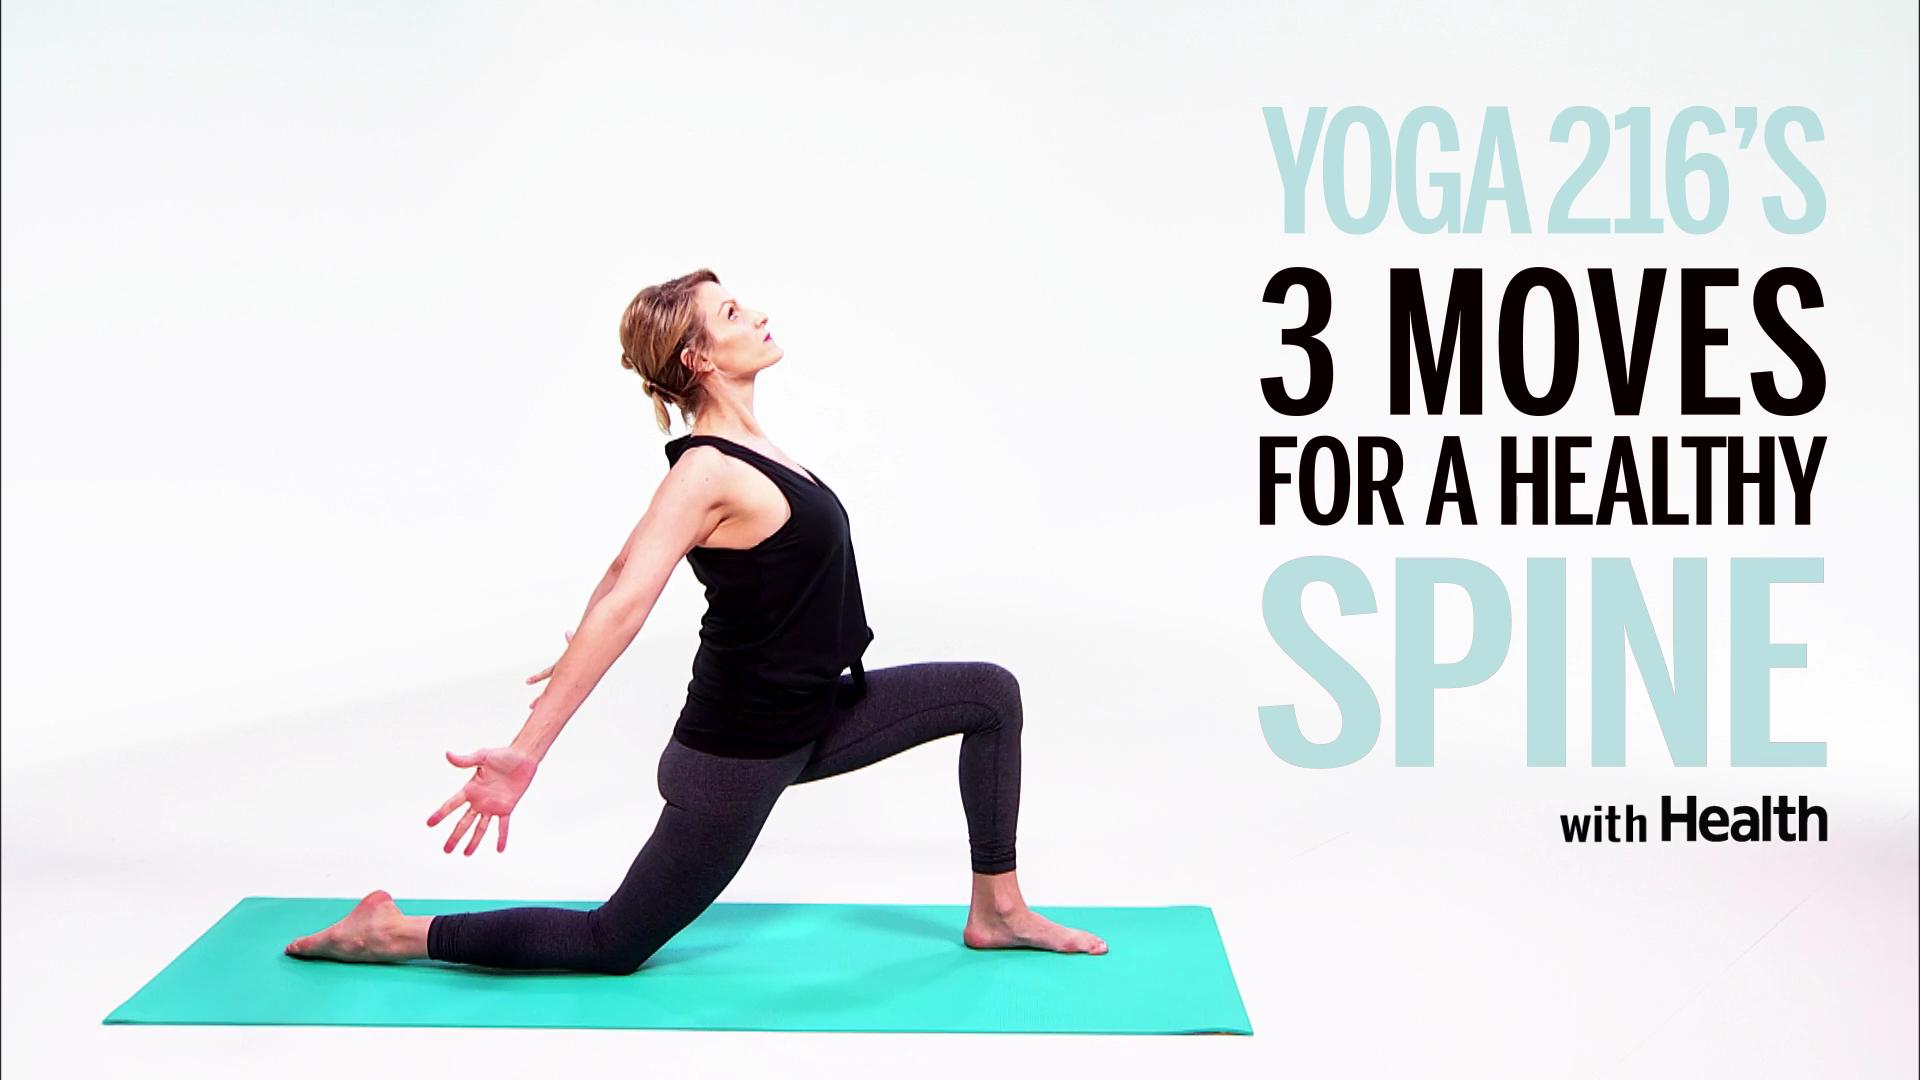 Try These 3 Yoga Moves for a Healthier, Stronger Spine